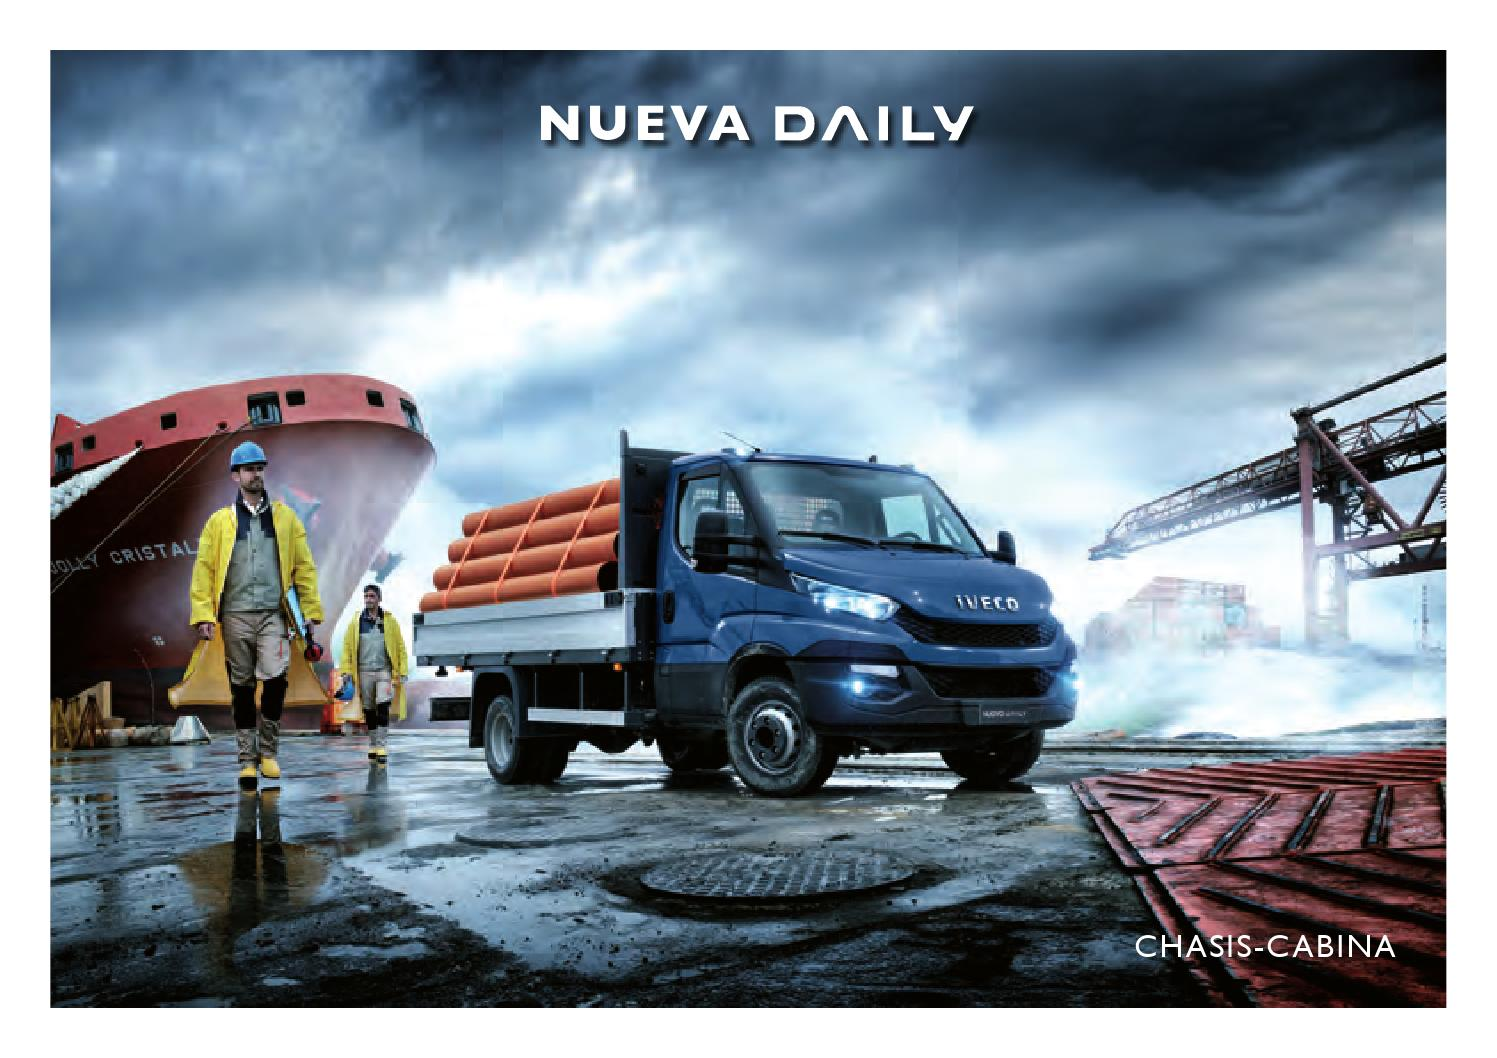 Nueva daily chasis cabina by iveco issuu - Iveco daily chasis cabina ...